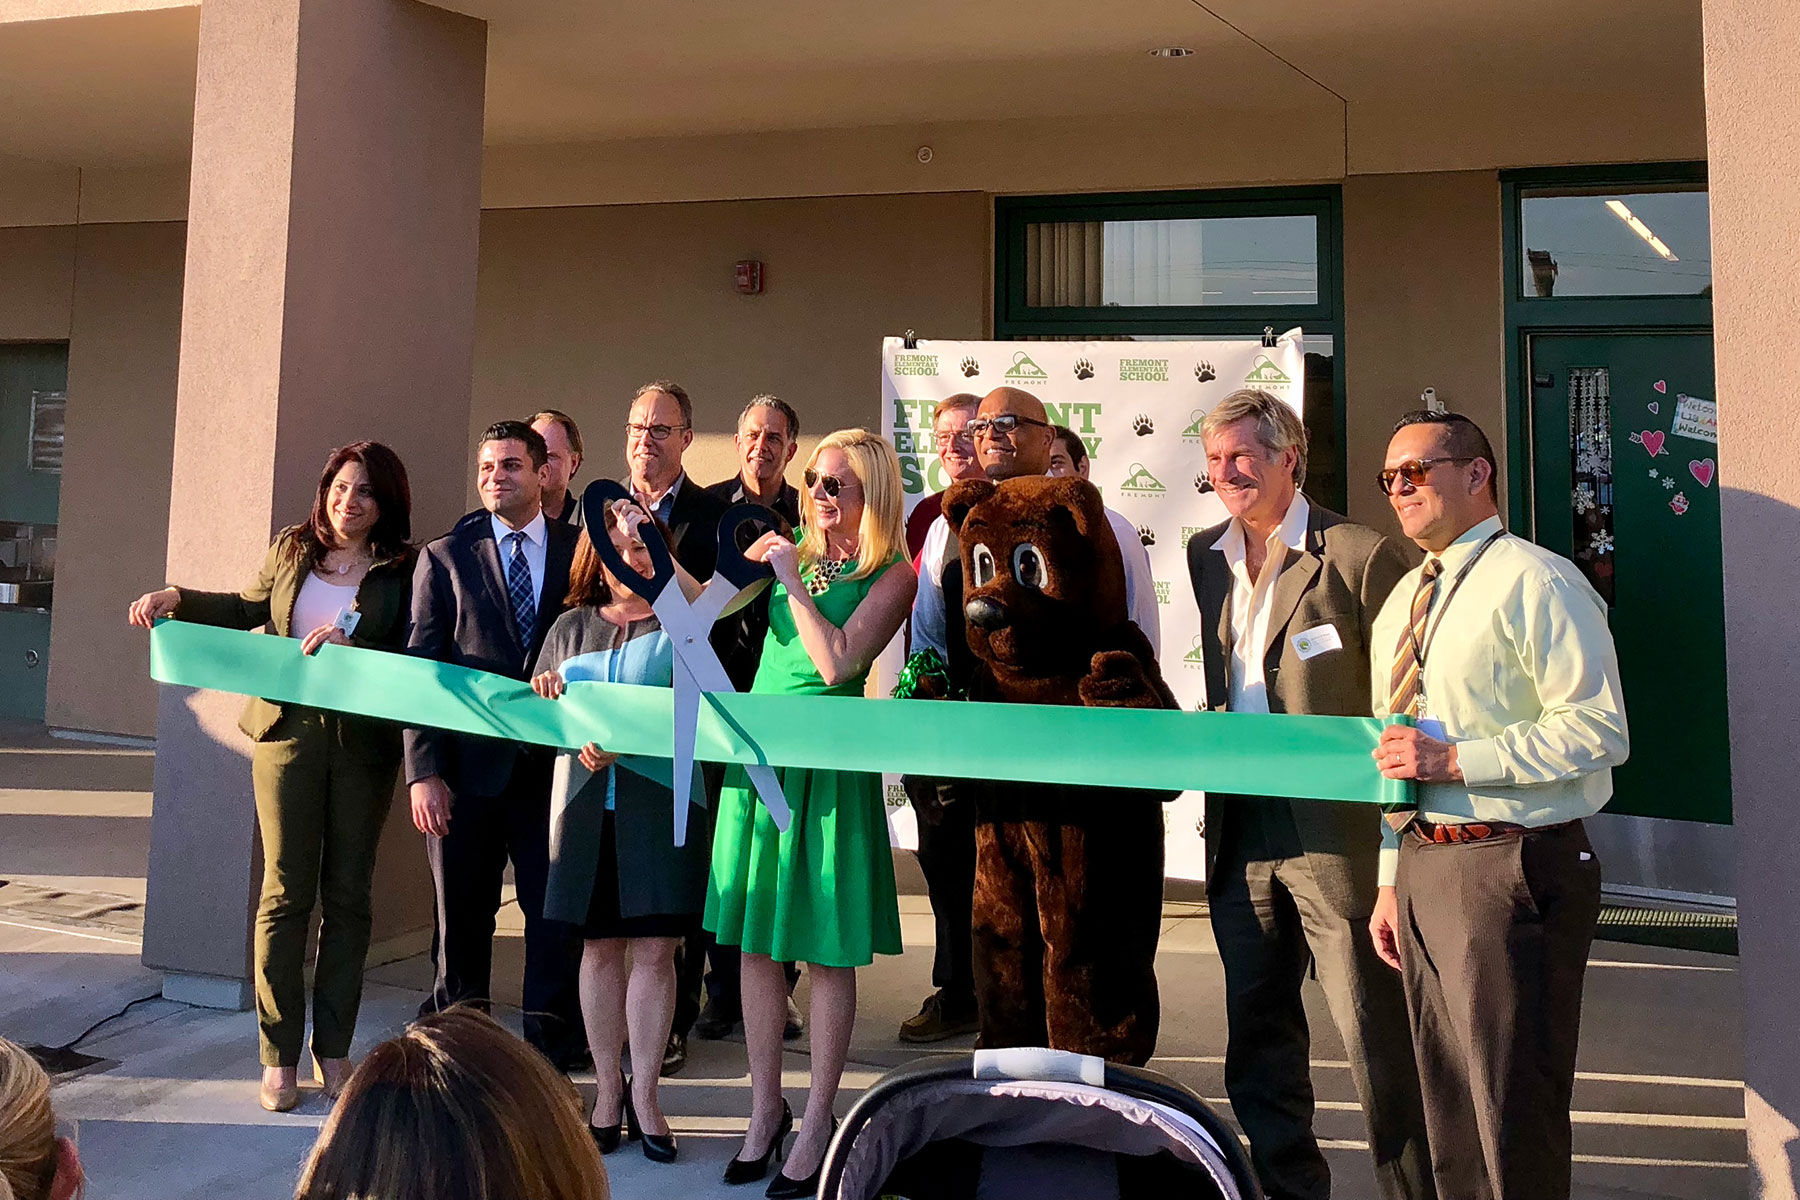 Fremont Elementary School Measure S Ribbon Cutting Ceremony February 2018